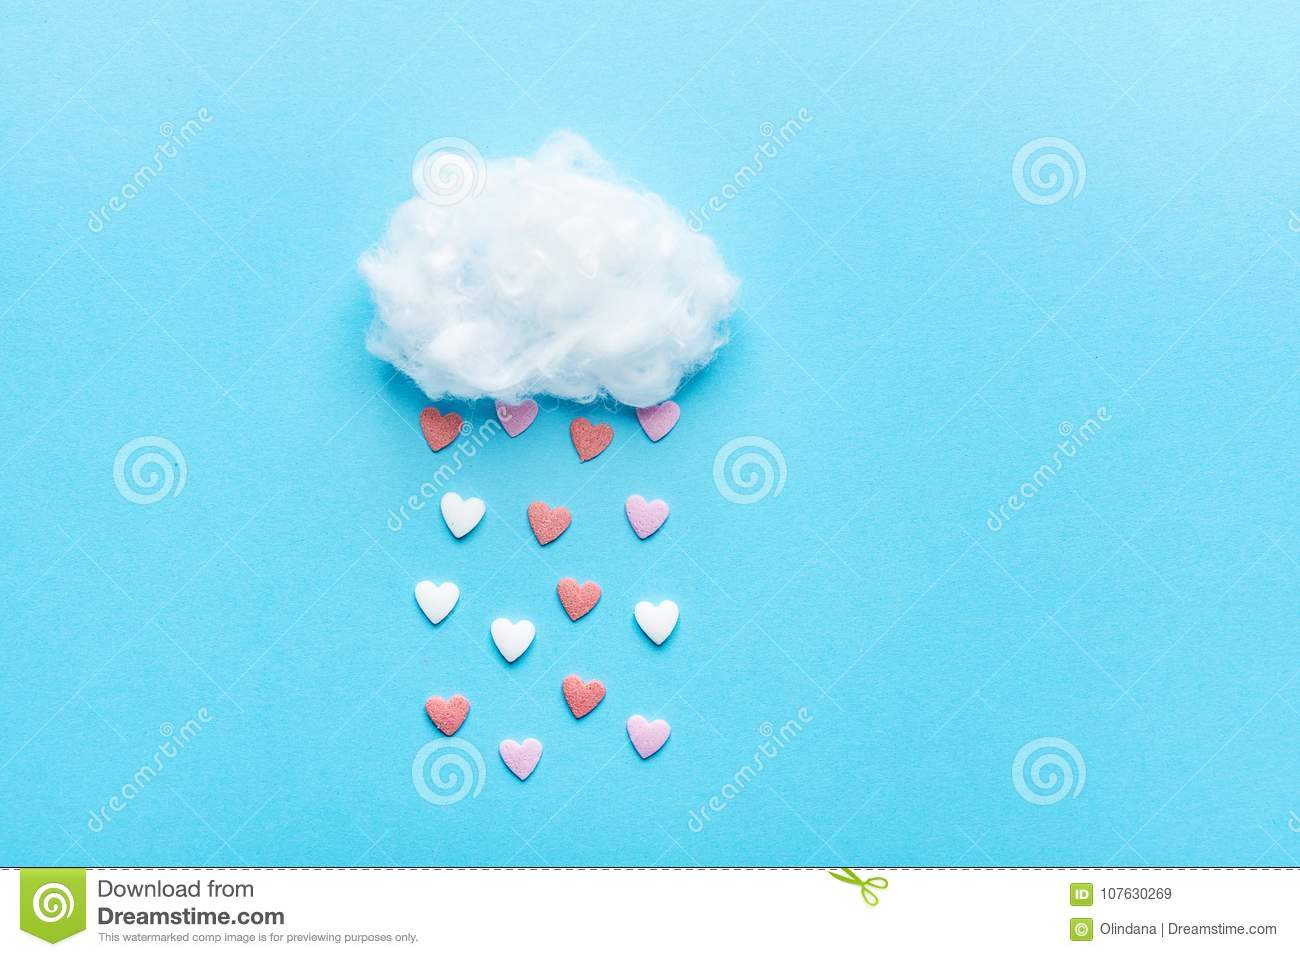 Cotton Ball Cloud Rain Sugar Candy Sprinkle Hearts Red Pink White on Blue Sky Background. Applique Art Composition Valentines